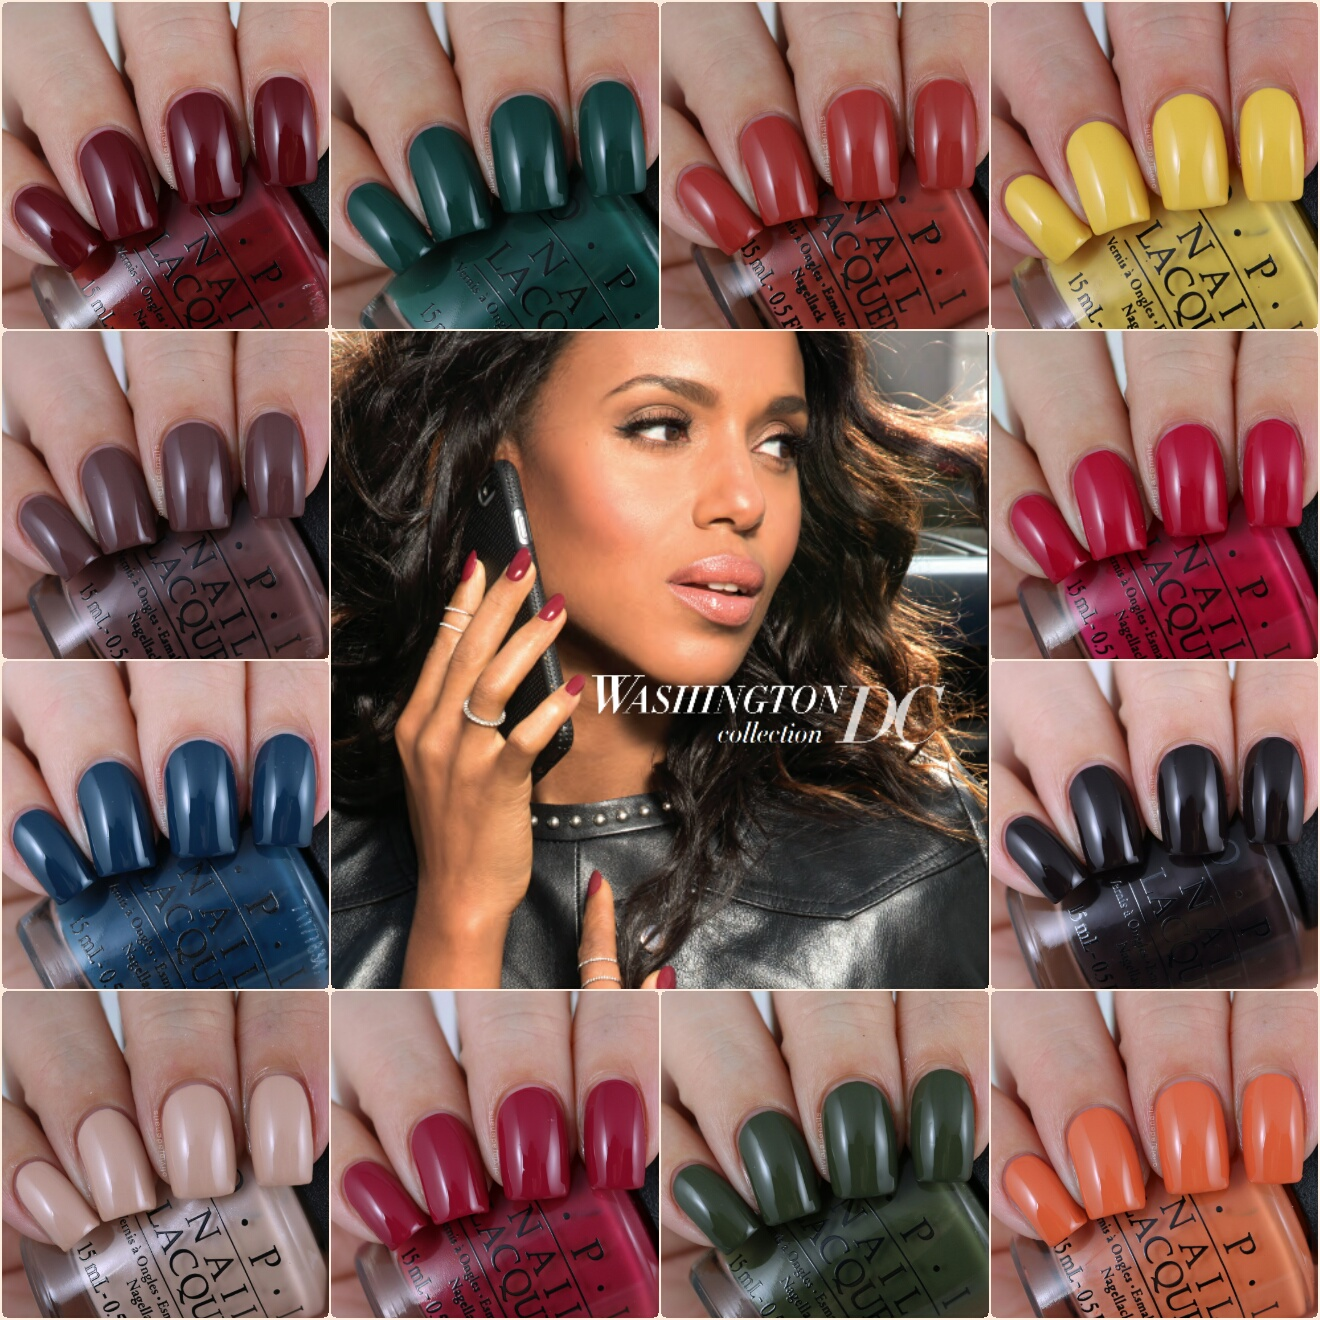 Olivia Jade Nails: OPI Washington DC Collection - Swatches & Review